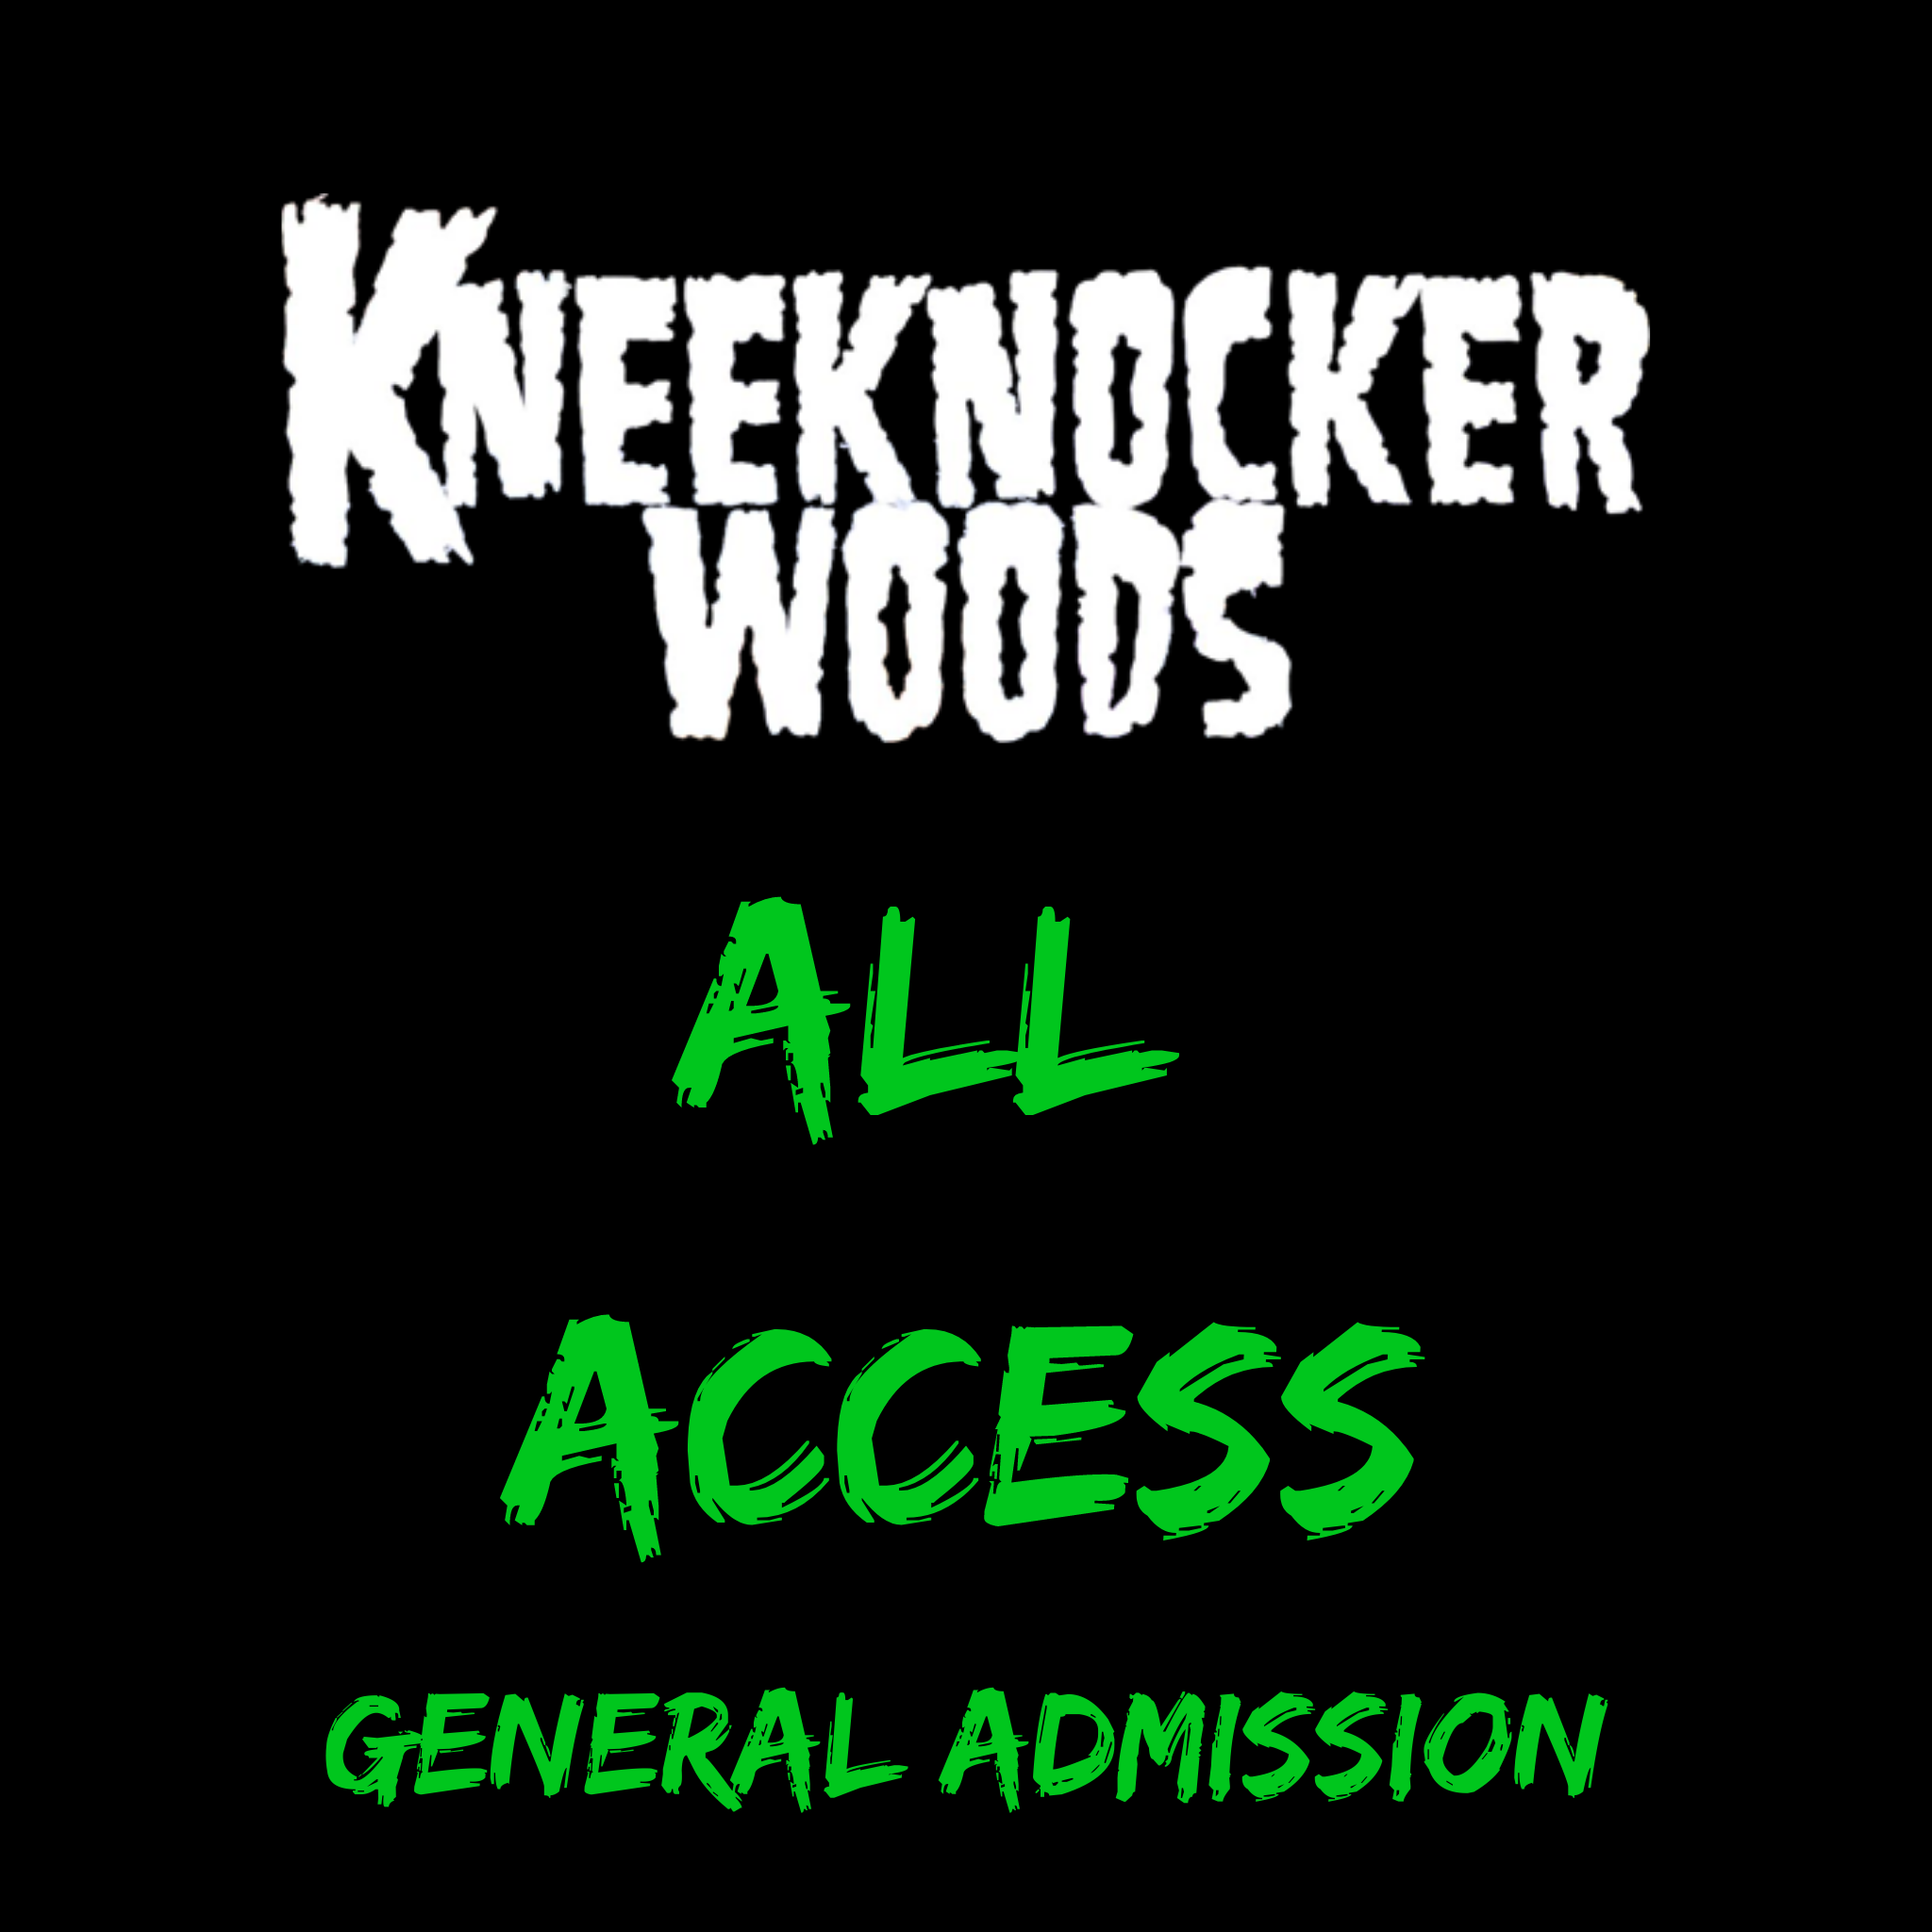 KneeKnocker Woods General Admission Unlimited All Access Pass